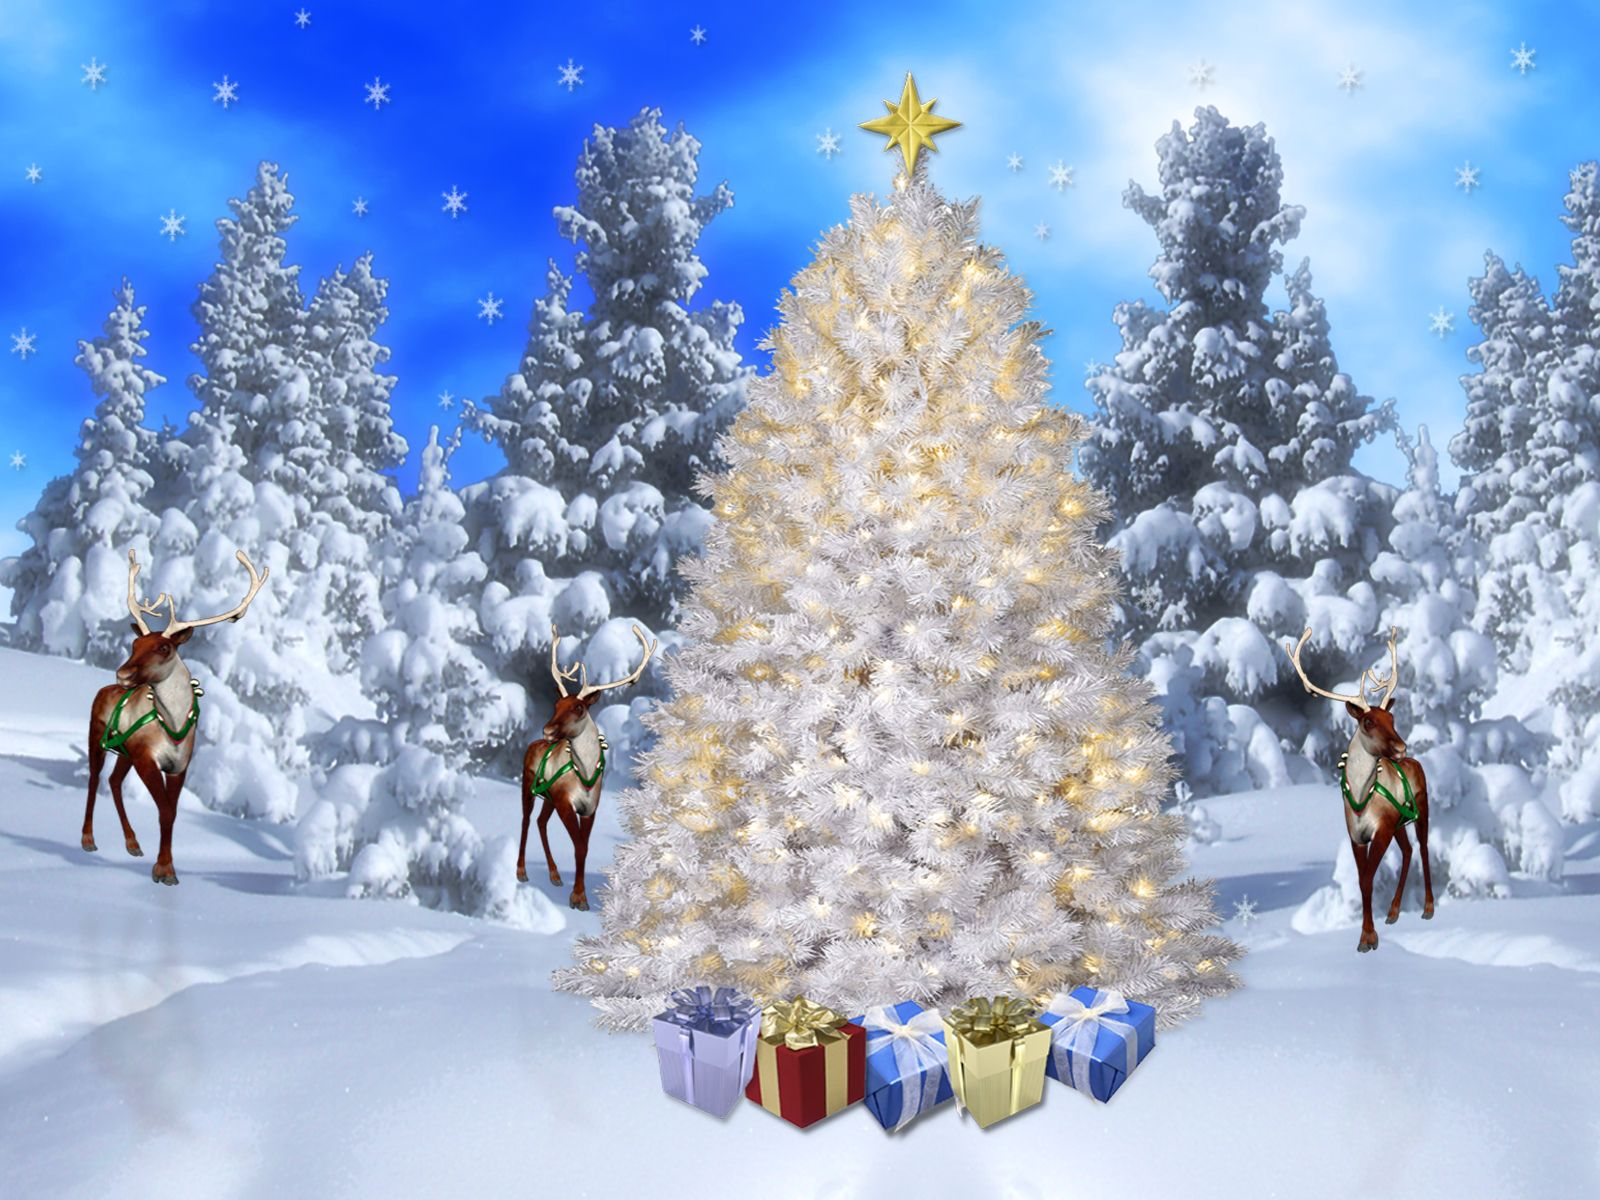 Christmas Screensavers and Wallpaper Bing images